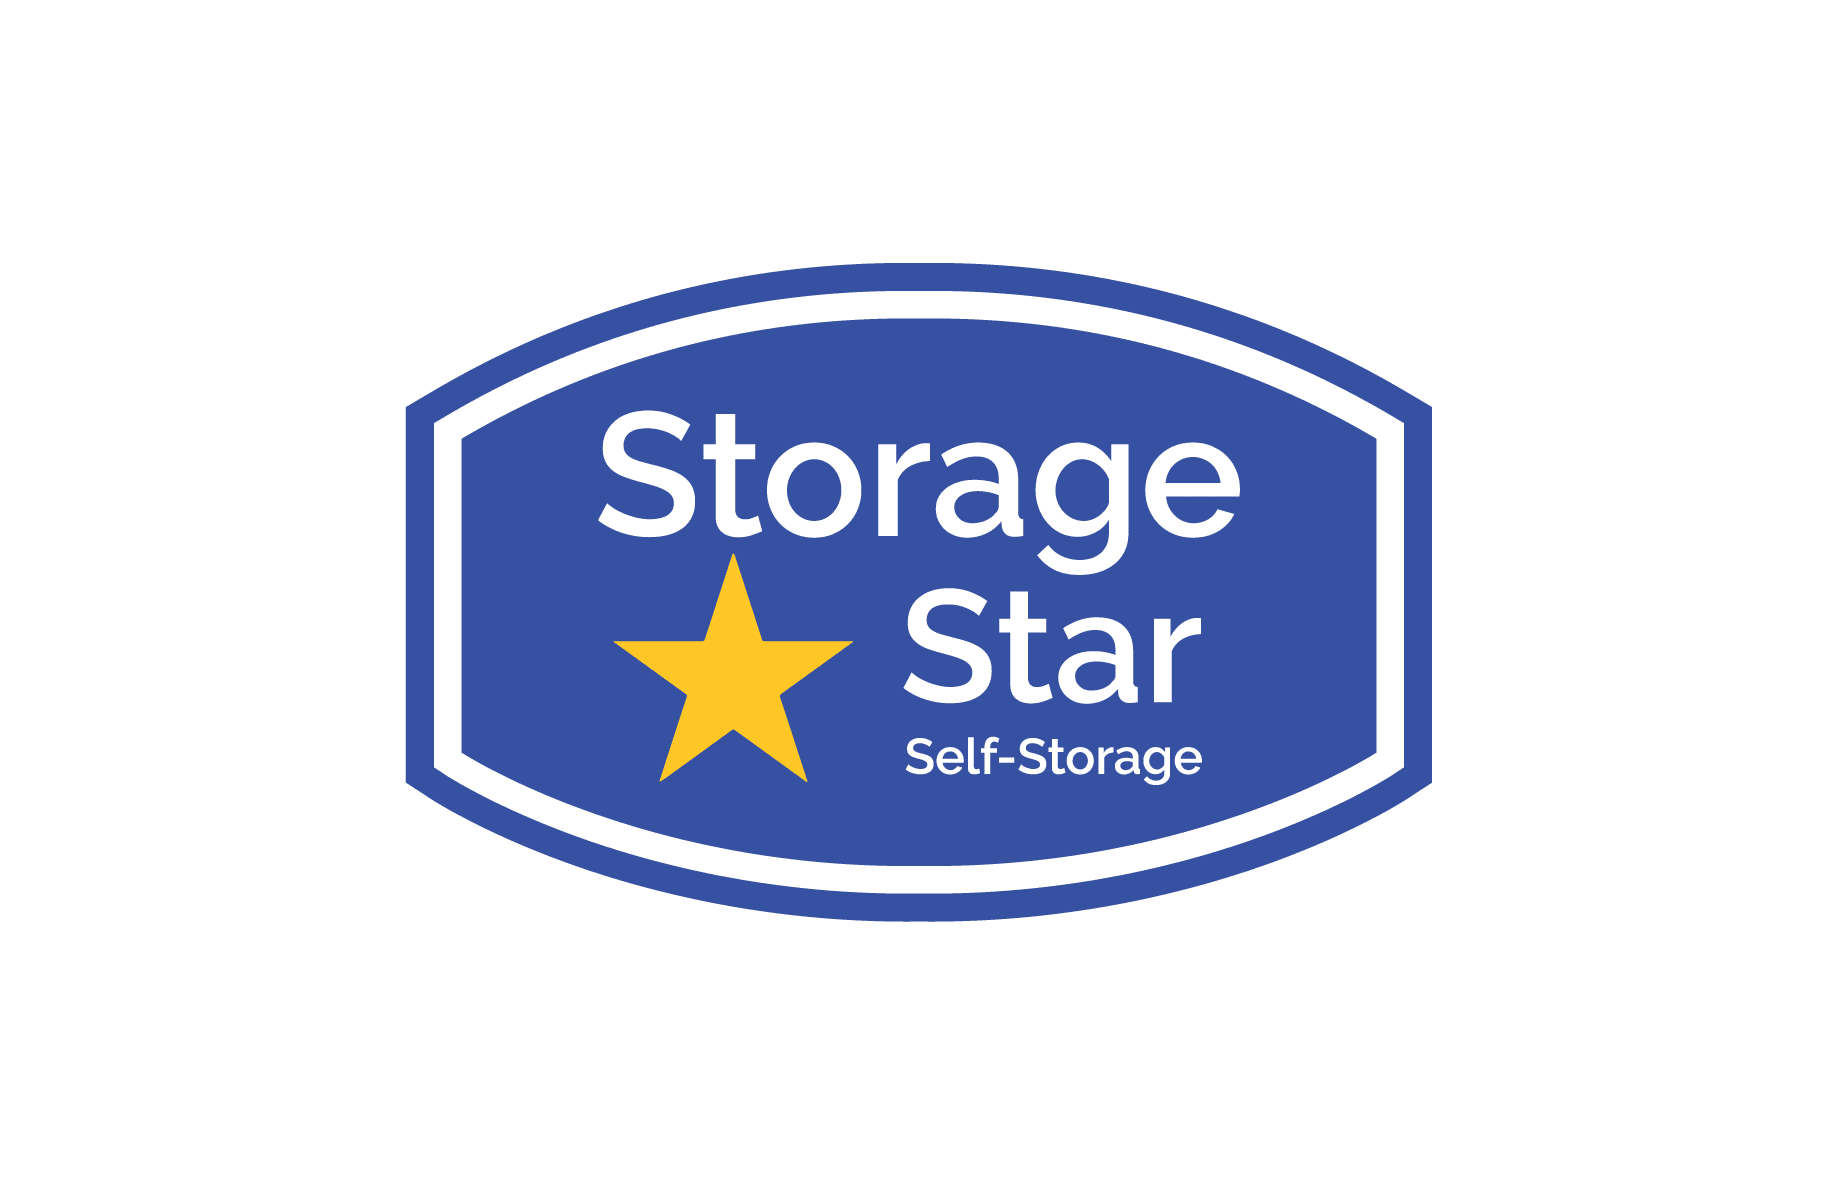 Storage Star Napa in Napa, California logo